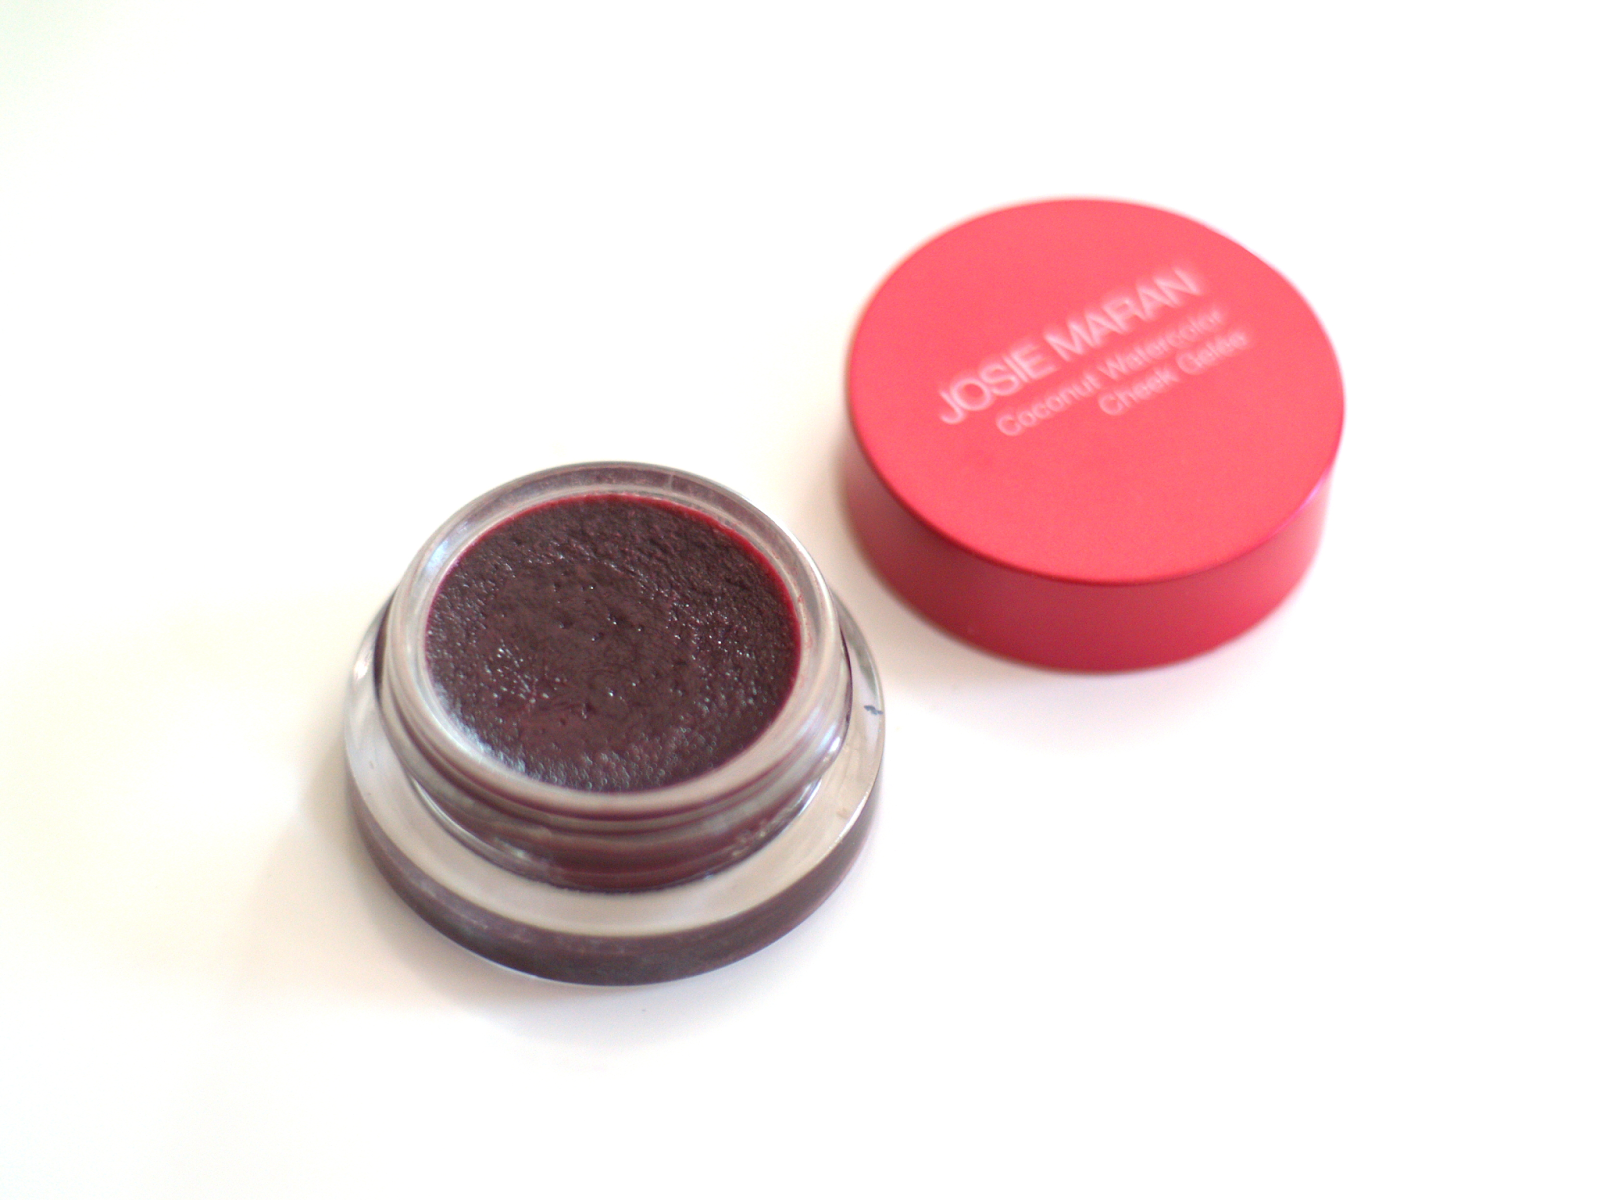 Josie Maran Coconut Watercolor Cheek Gelée in Berry Bliss